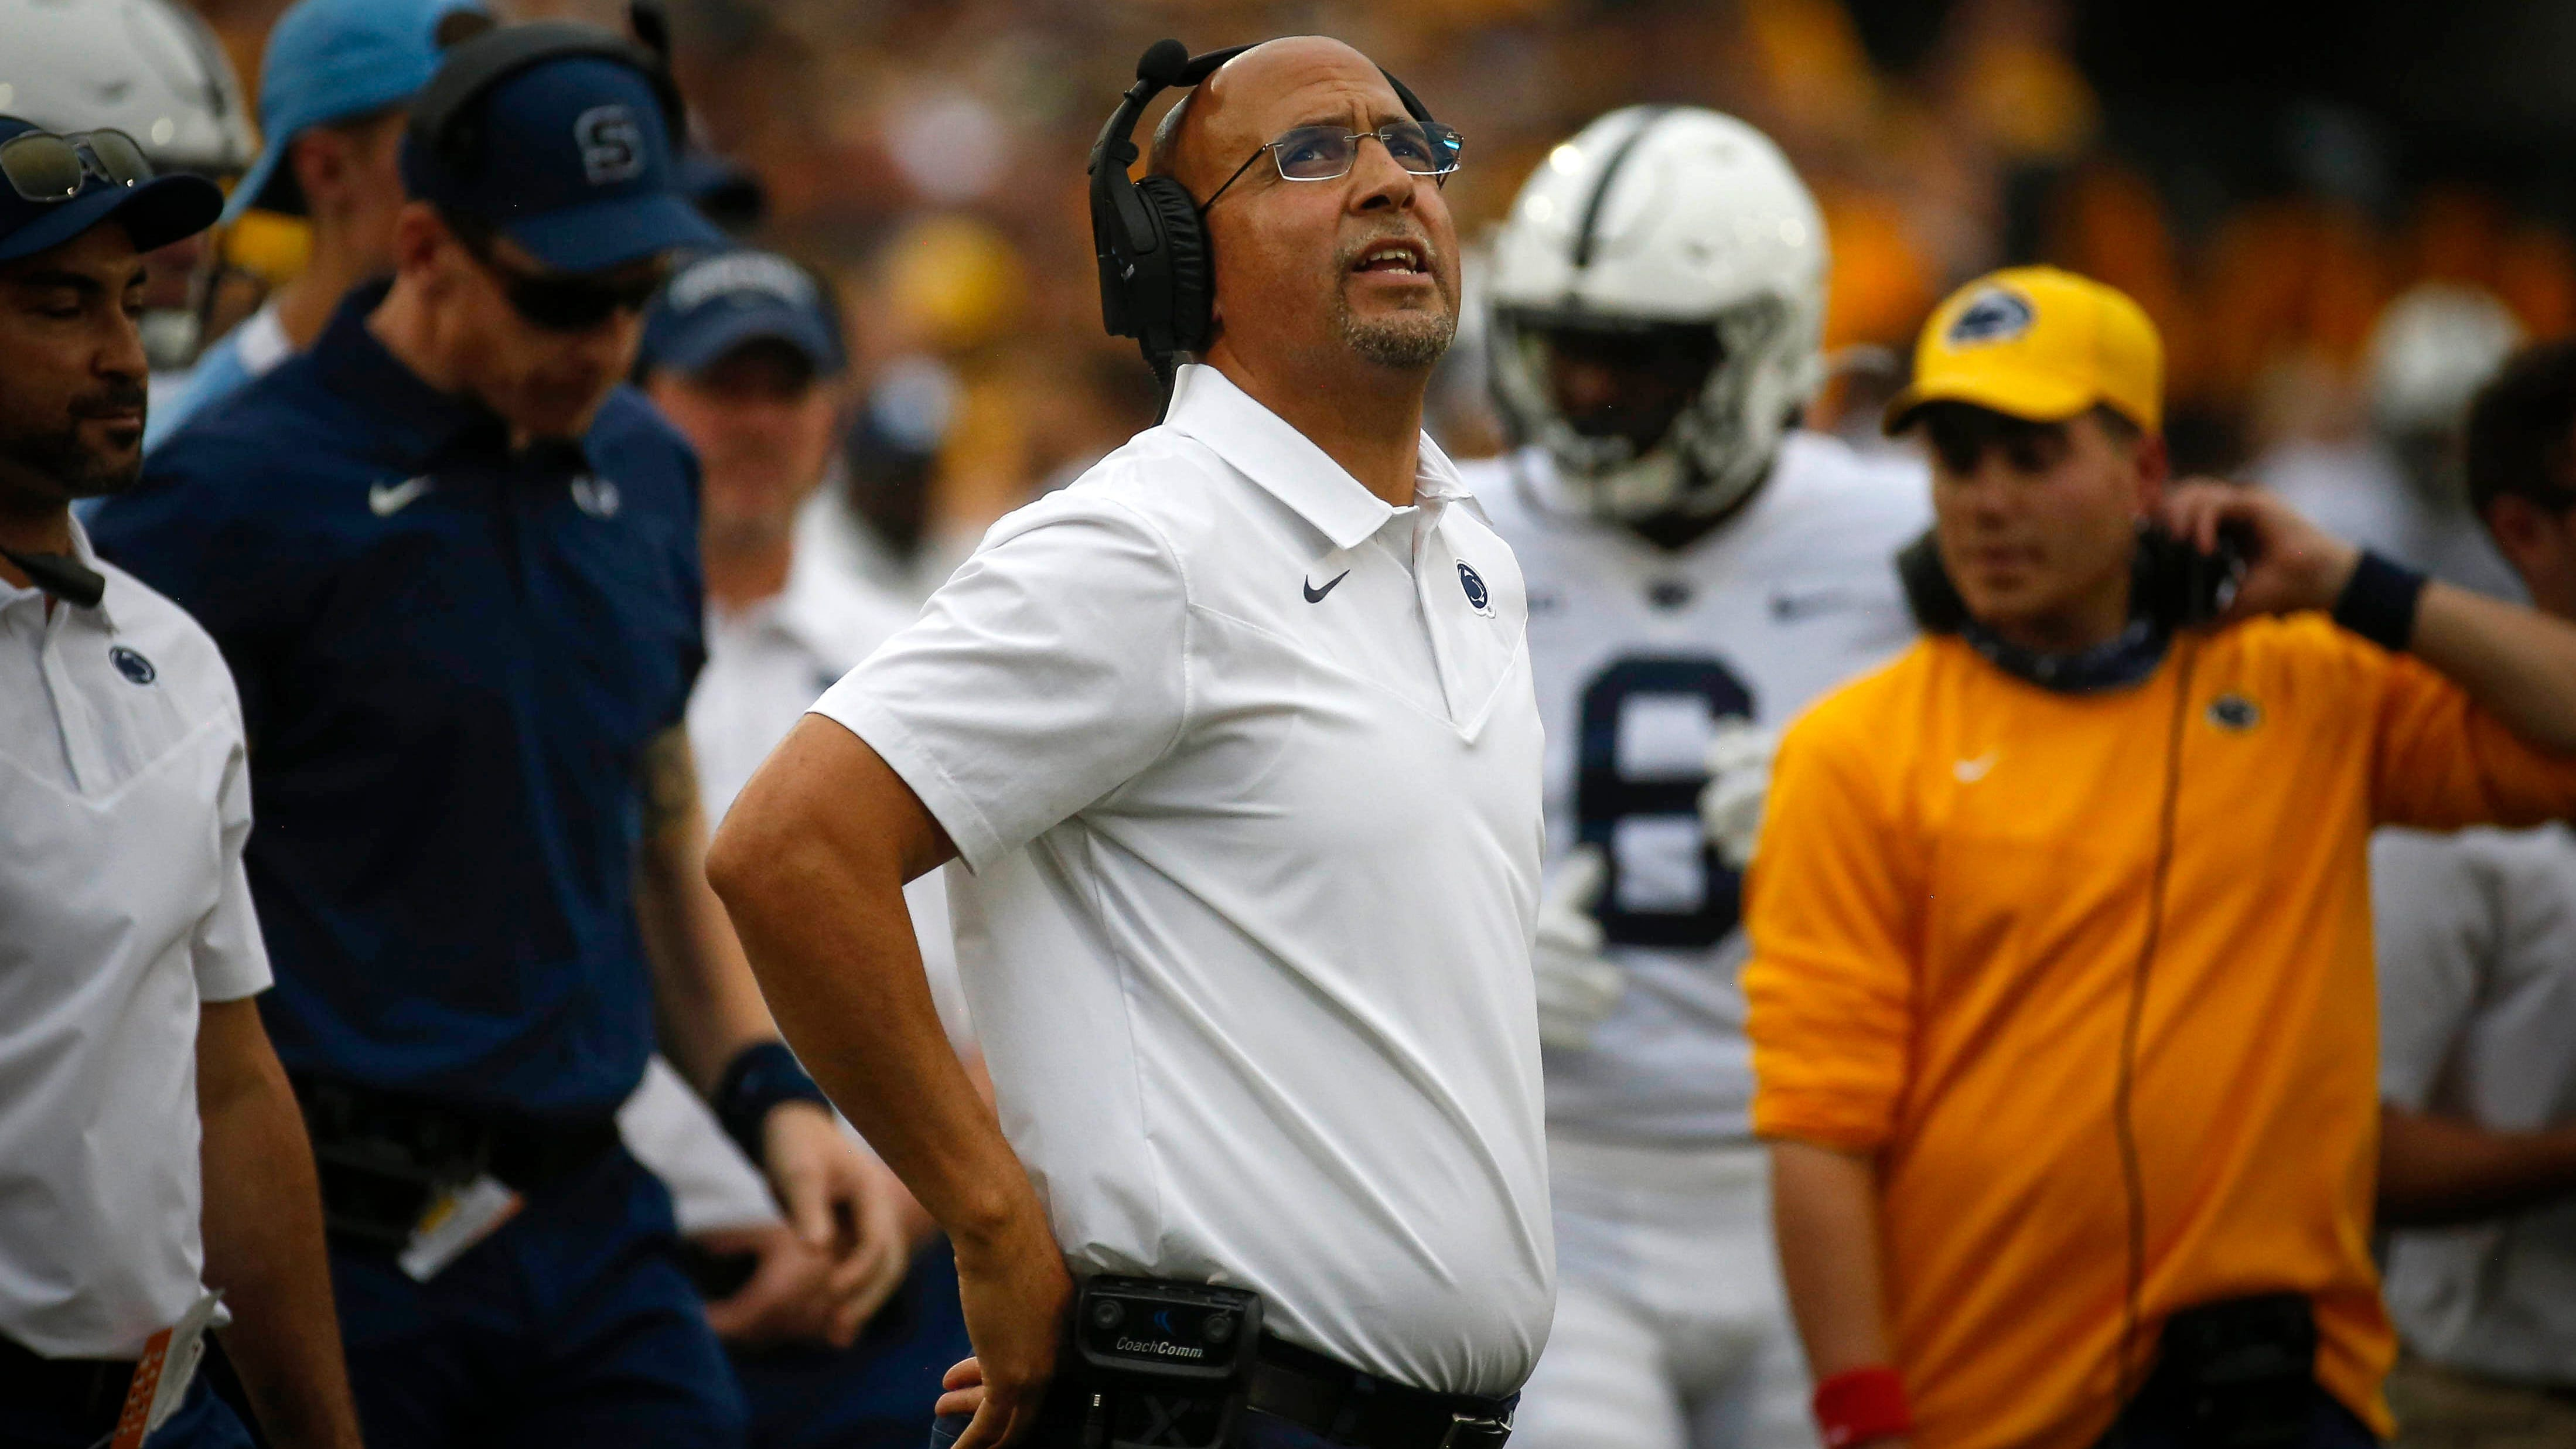 Penn State head football coach James Franklin looks up at the big screen after a play in the third quarter against Iowa.